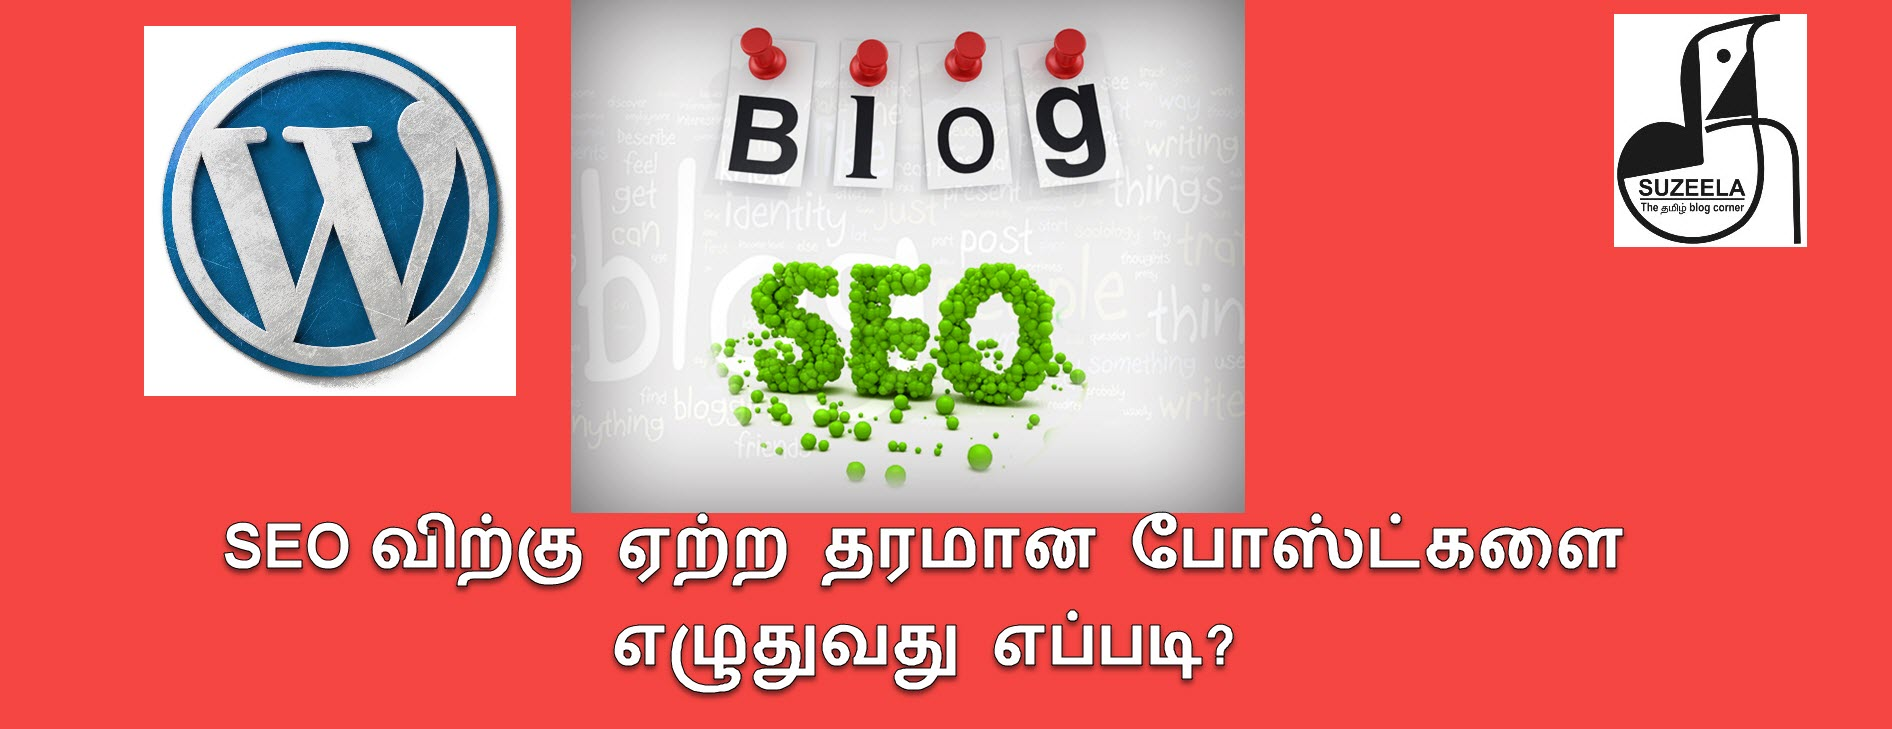 SEO friendly blog Post in Tamil